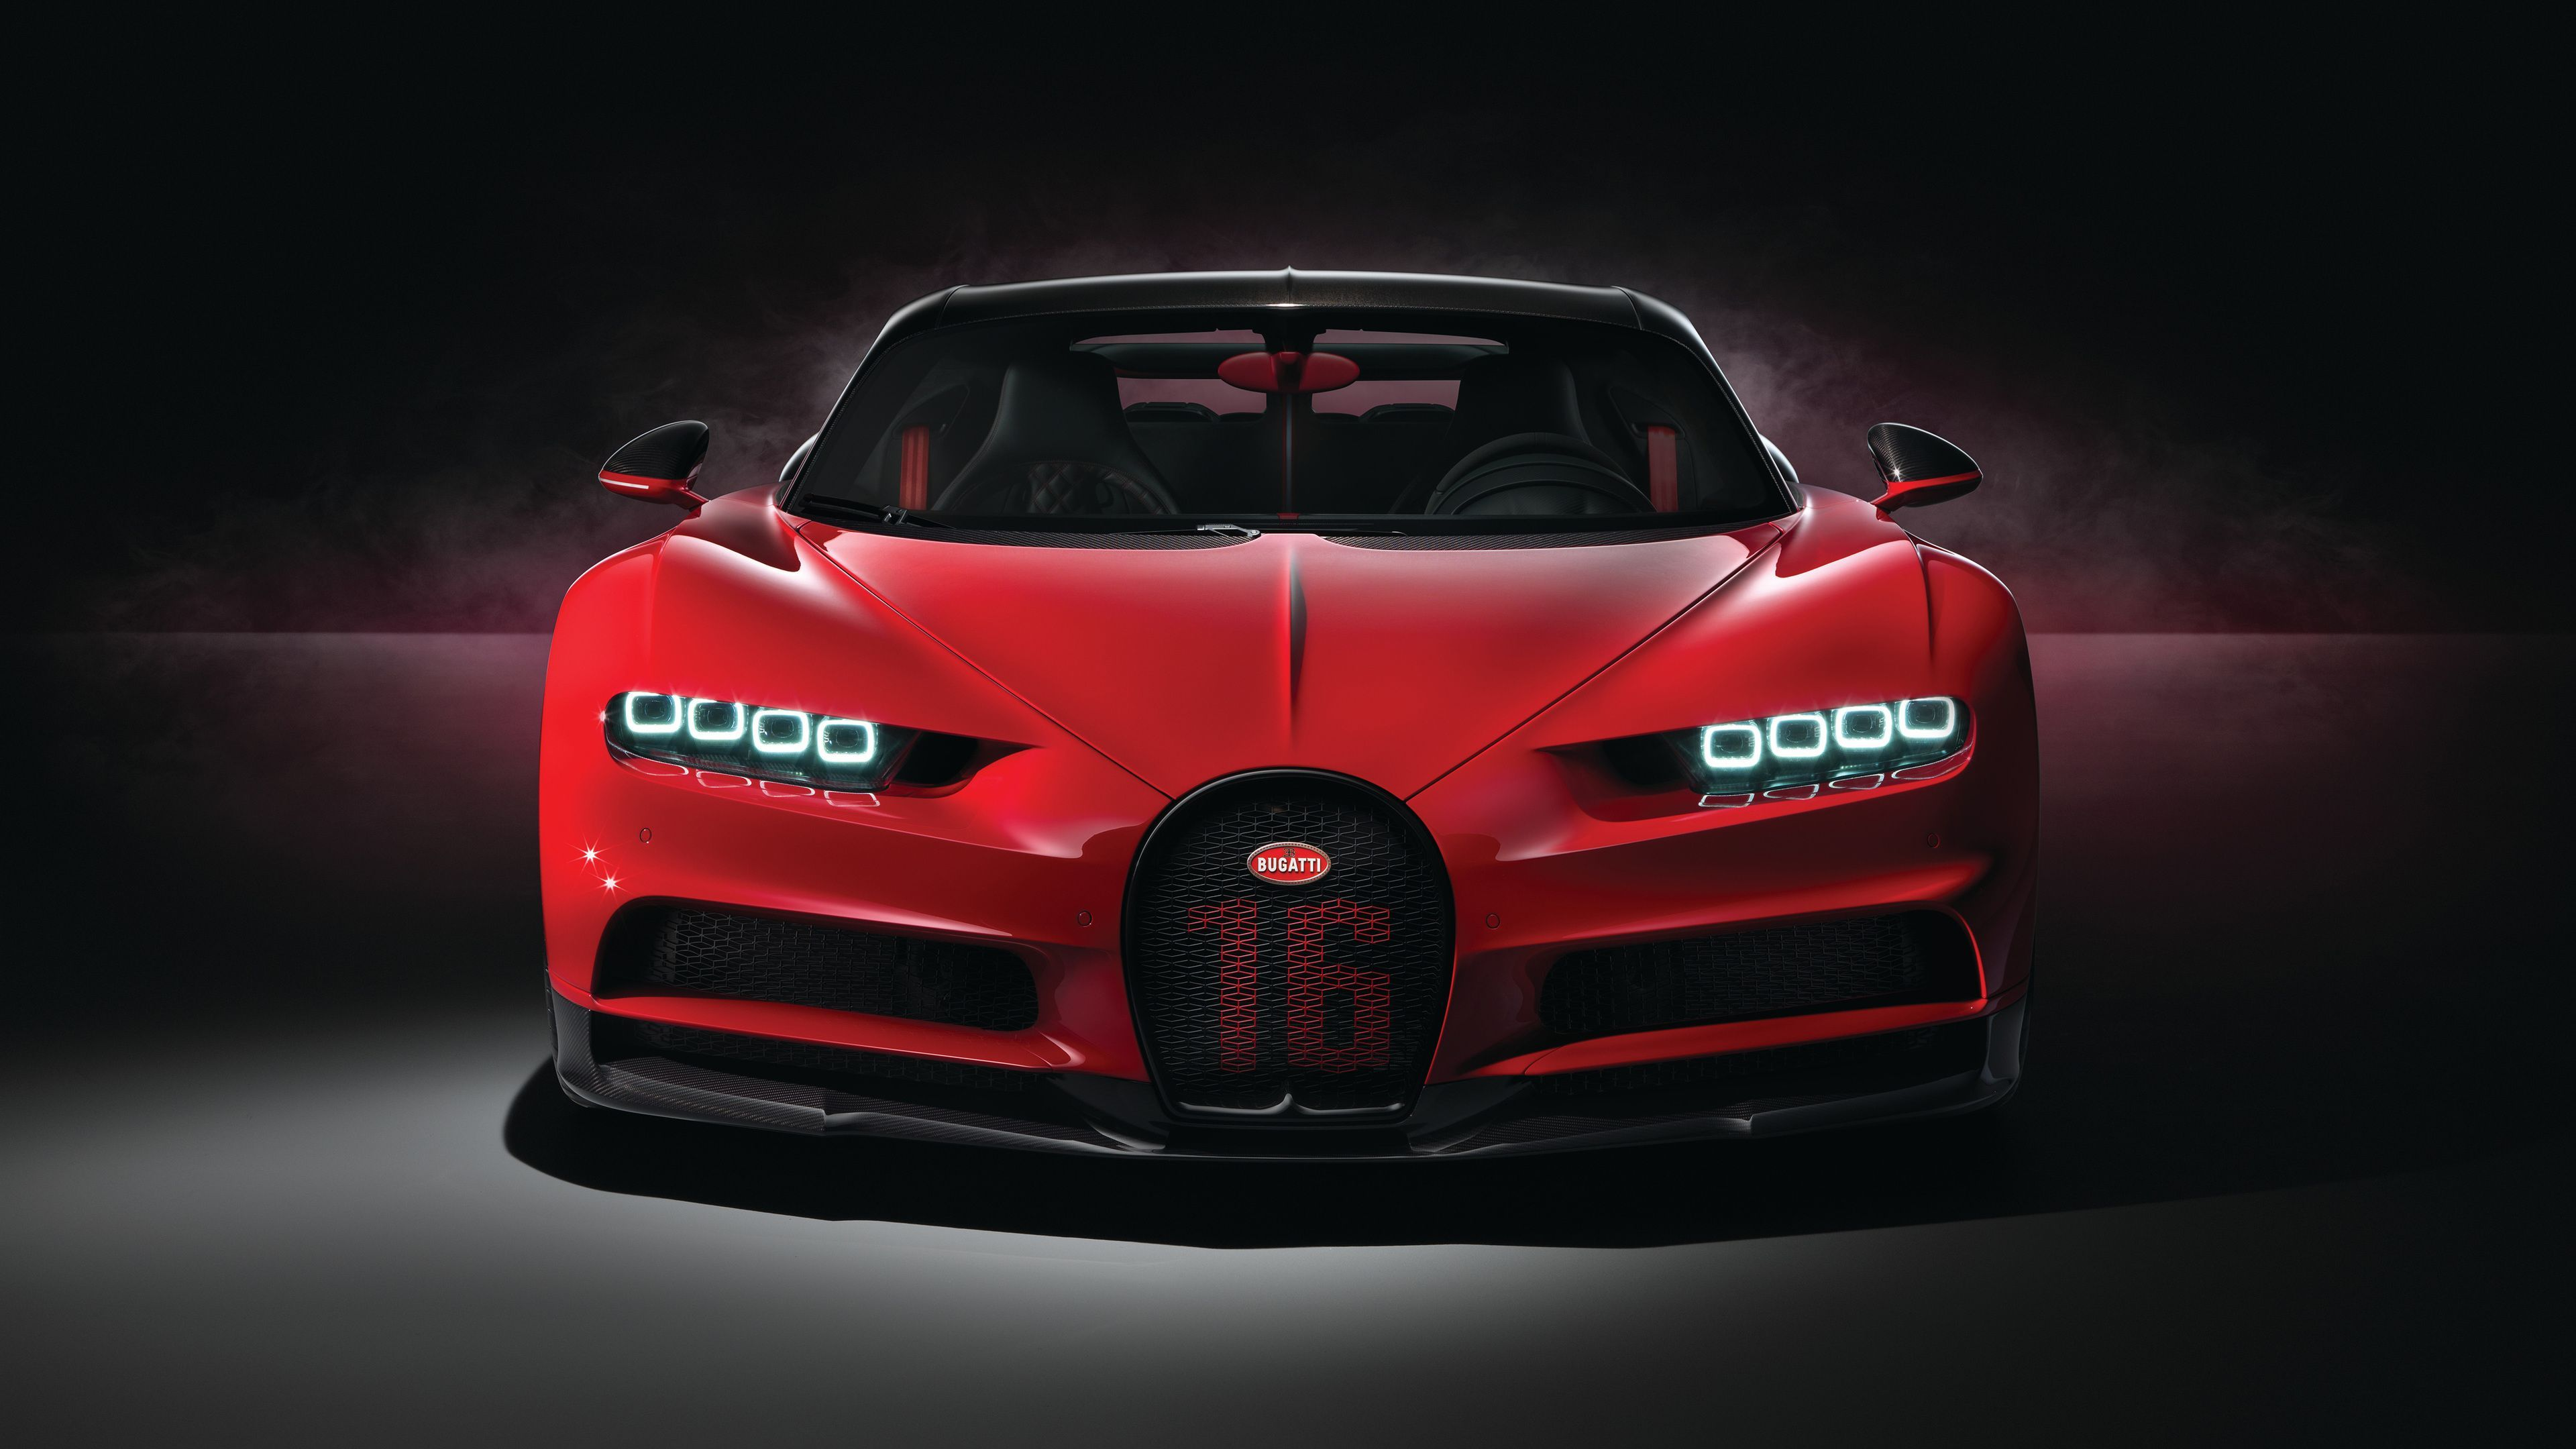 Bugatti Red Wallpapers Top Free Bugatti Red Backgrounds